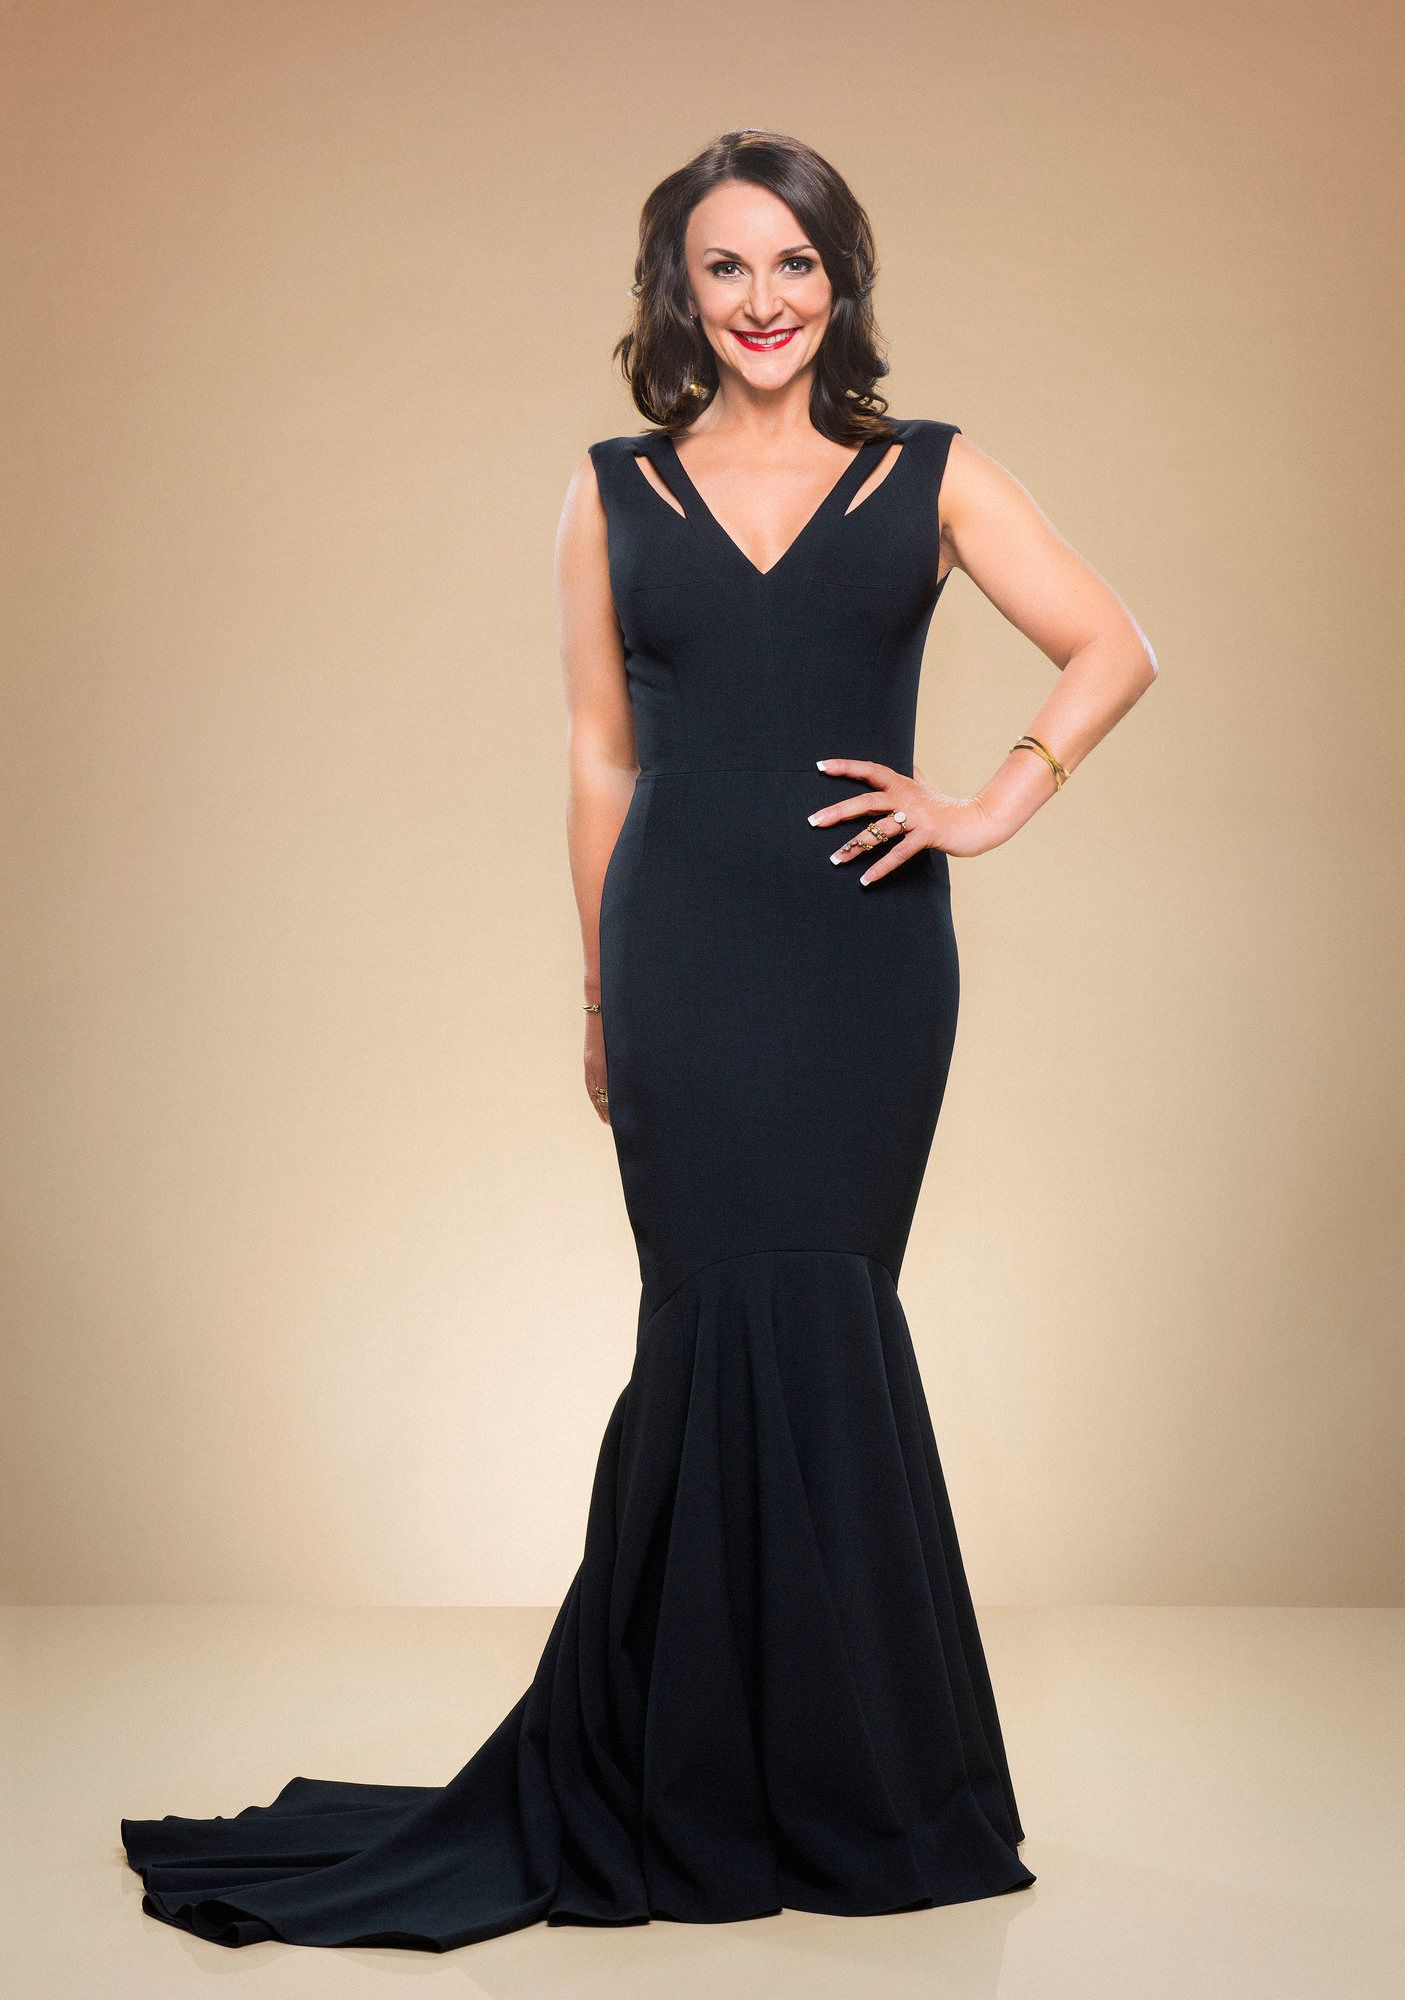 Who Is Shirley Ballas? Meet Strictly Come Dancing's New Judge And Len Goodman's